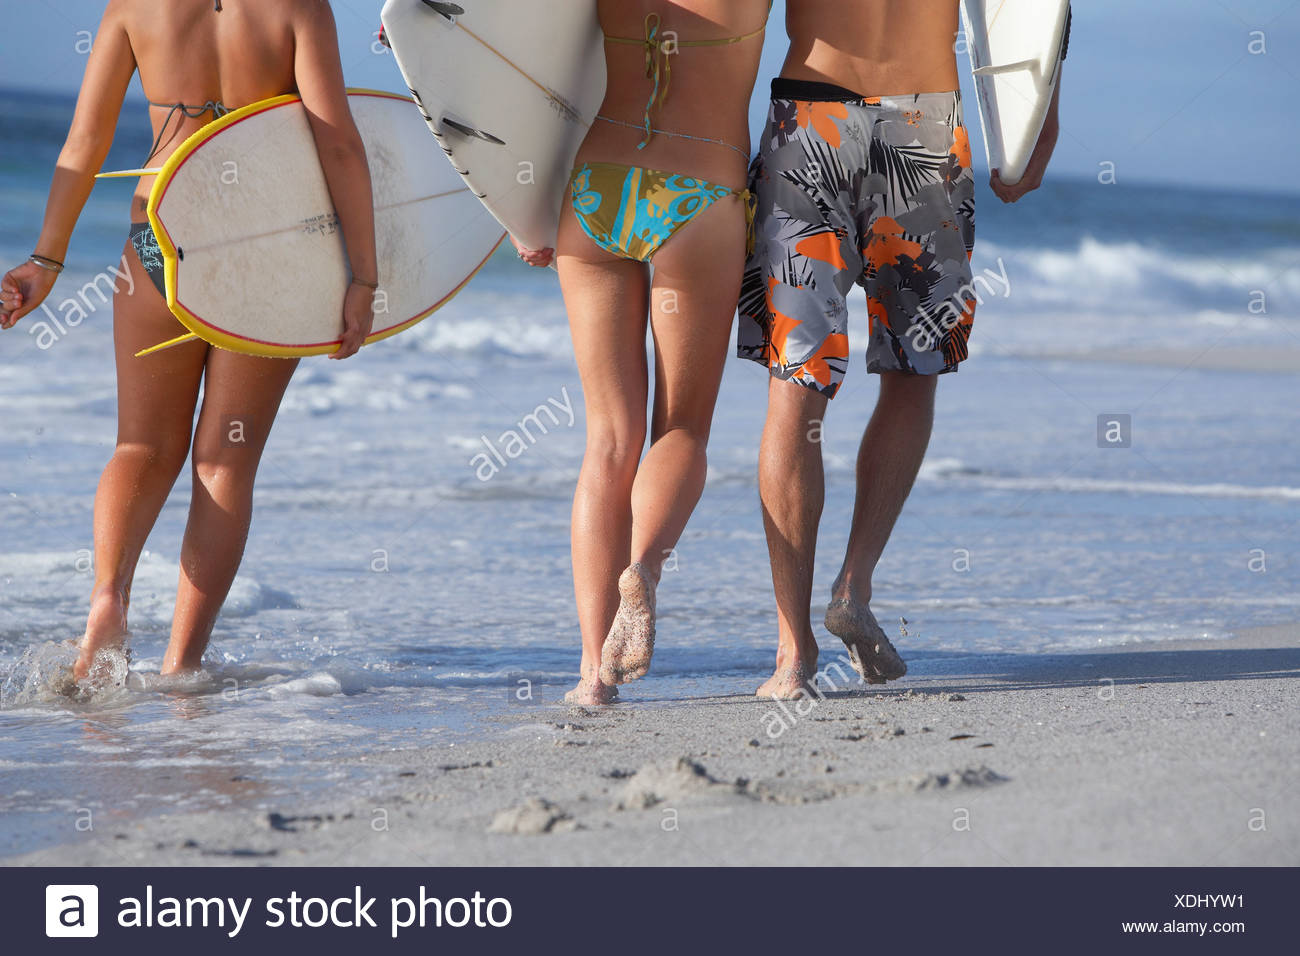 Two young women and man walking on beach carrying surfboards side by side low section rear view - Stock Image